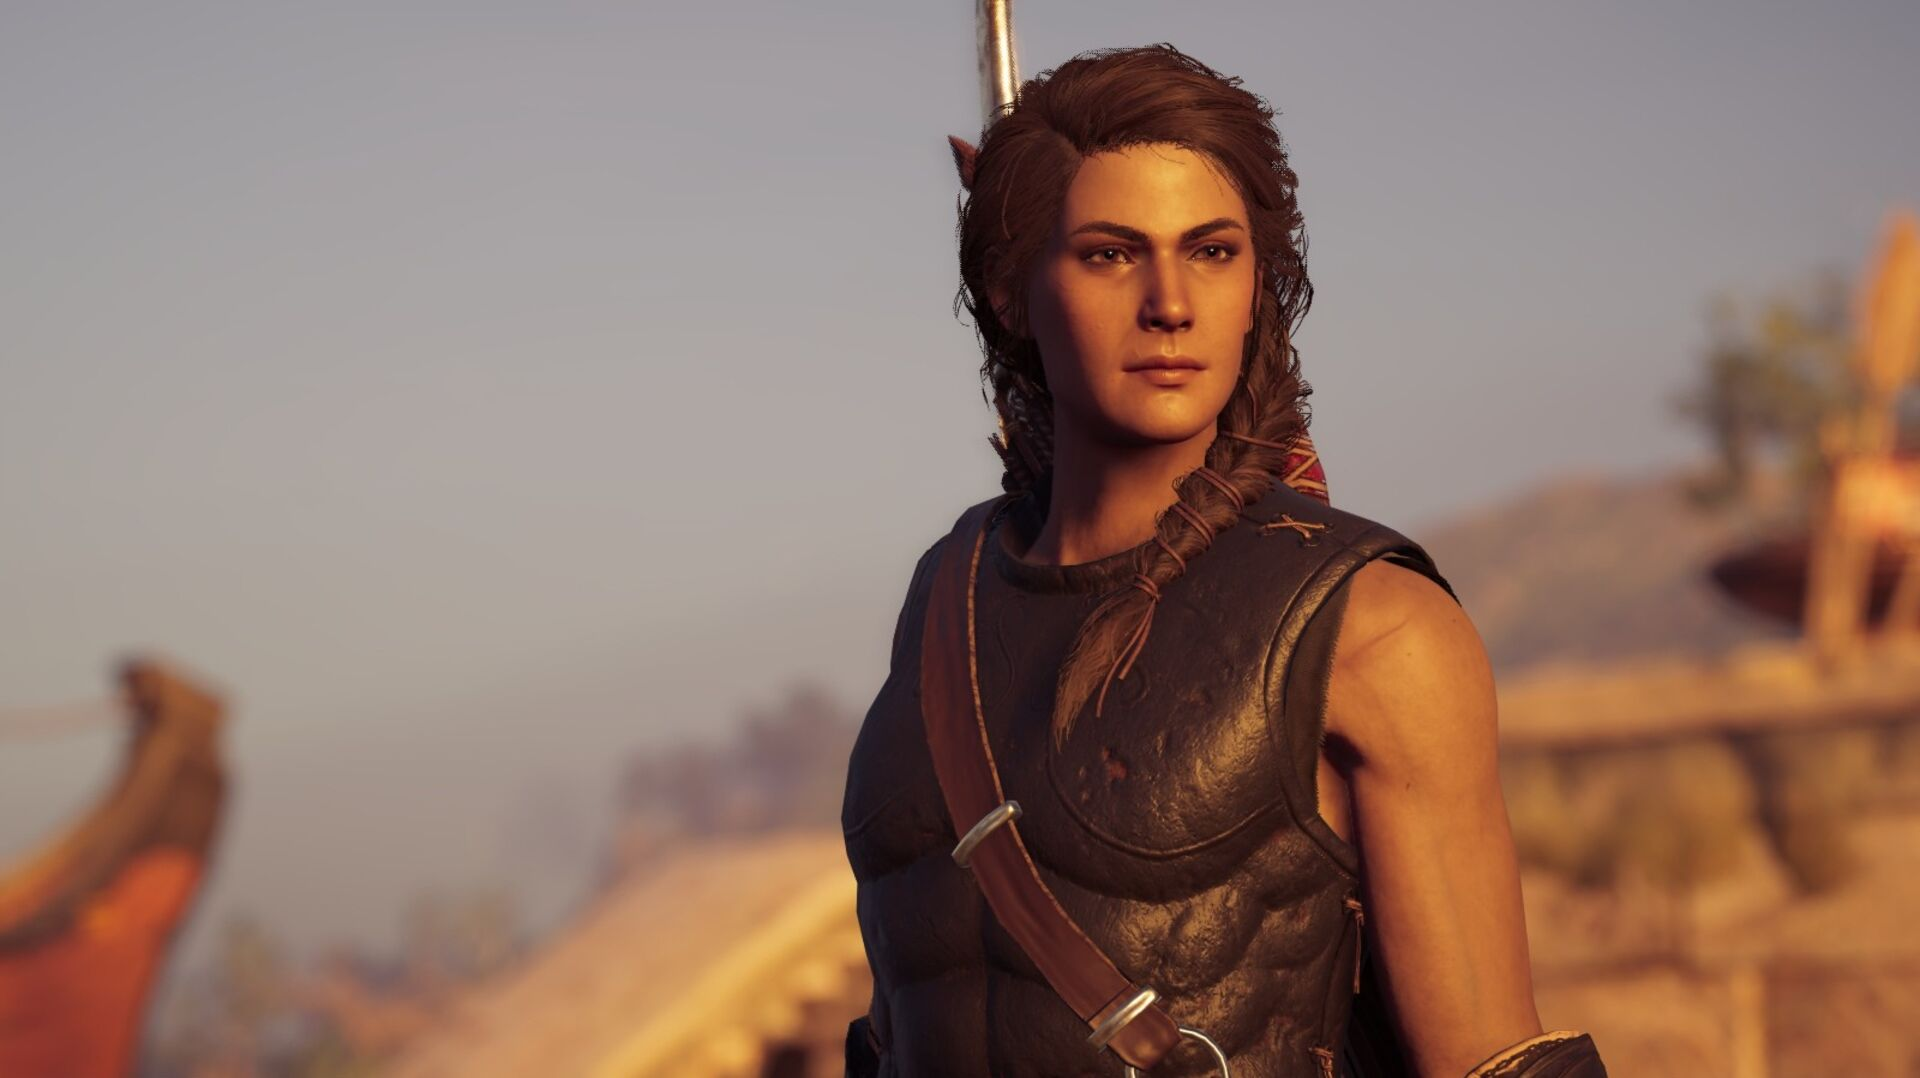 We Need To Talk About Kassandra S Biceps Eurogamer Net